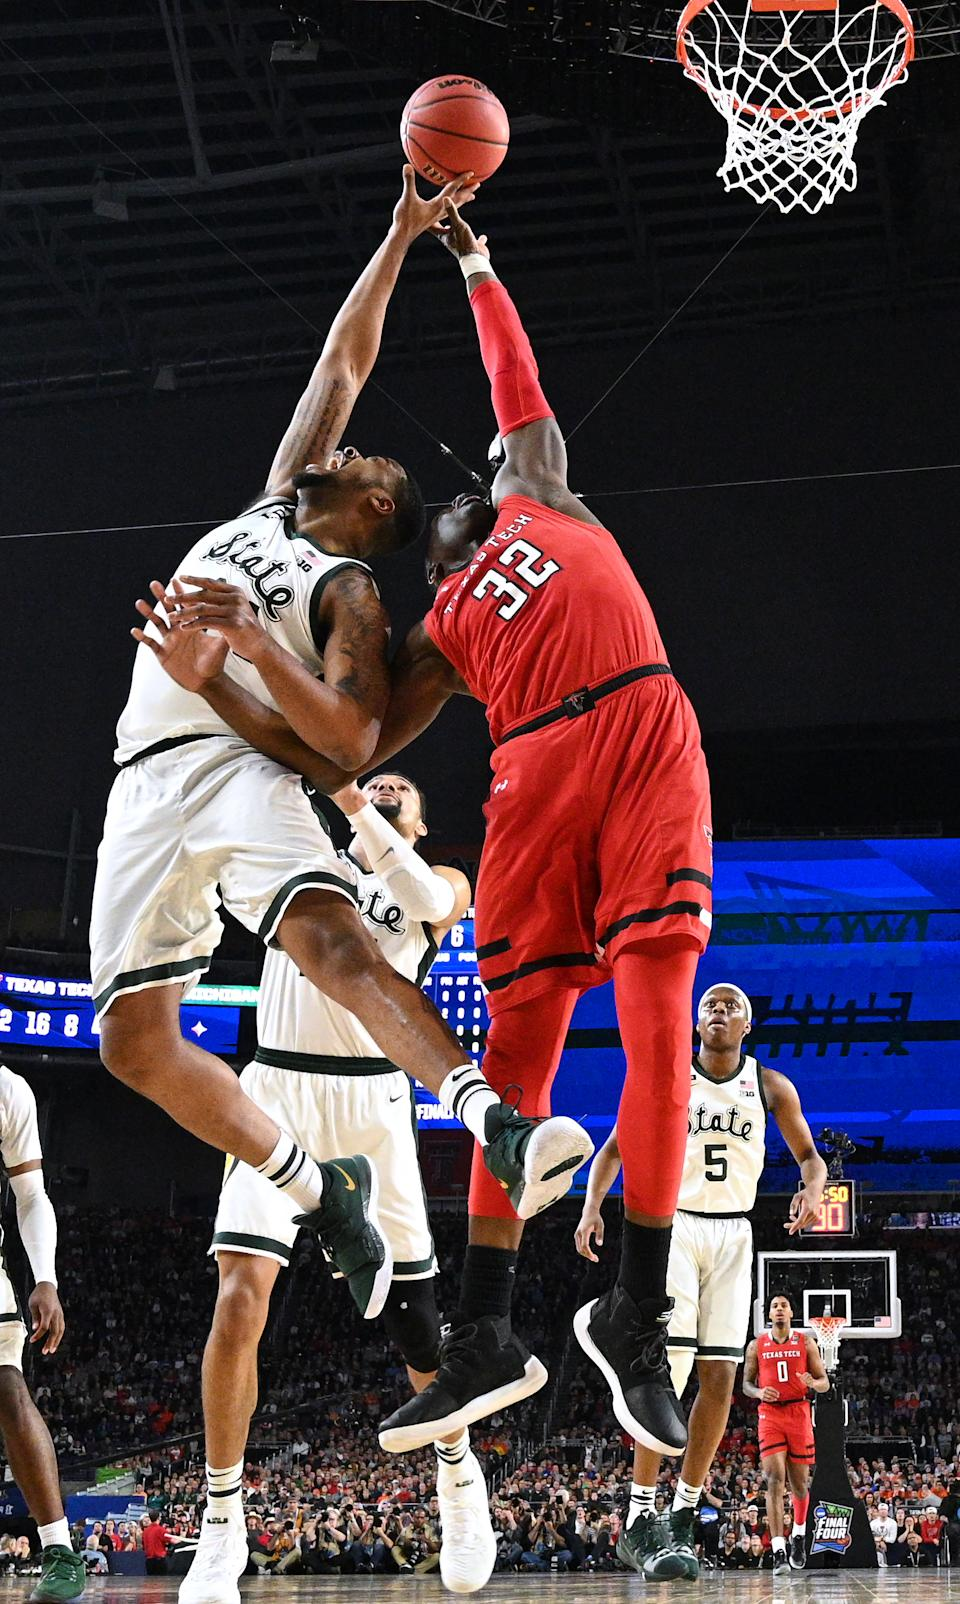 Nick Ward #44 of the Michigan State Spartans and Norense Odiase #32 of the Texas Tech Red Raiders battle for a rebound of the semifinal game in the NCAA Men's Final Four at U.S. Bank Stadium on April 06, 2019 in Minneapolis, Minnesota. (Photo by Brett Wilhelm/NCAA Photos via Getty Images)